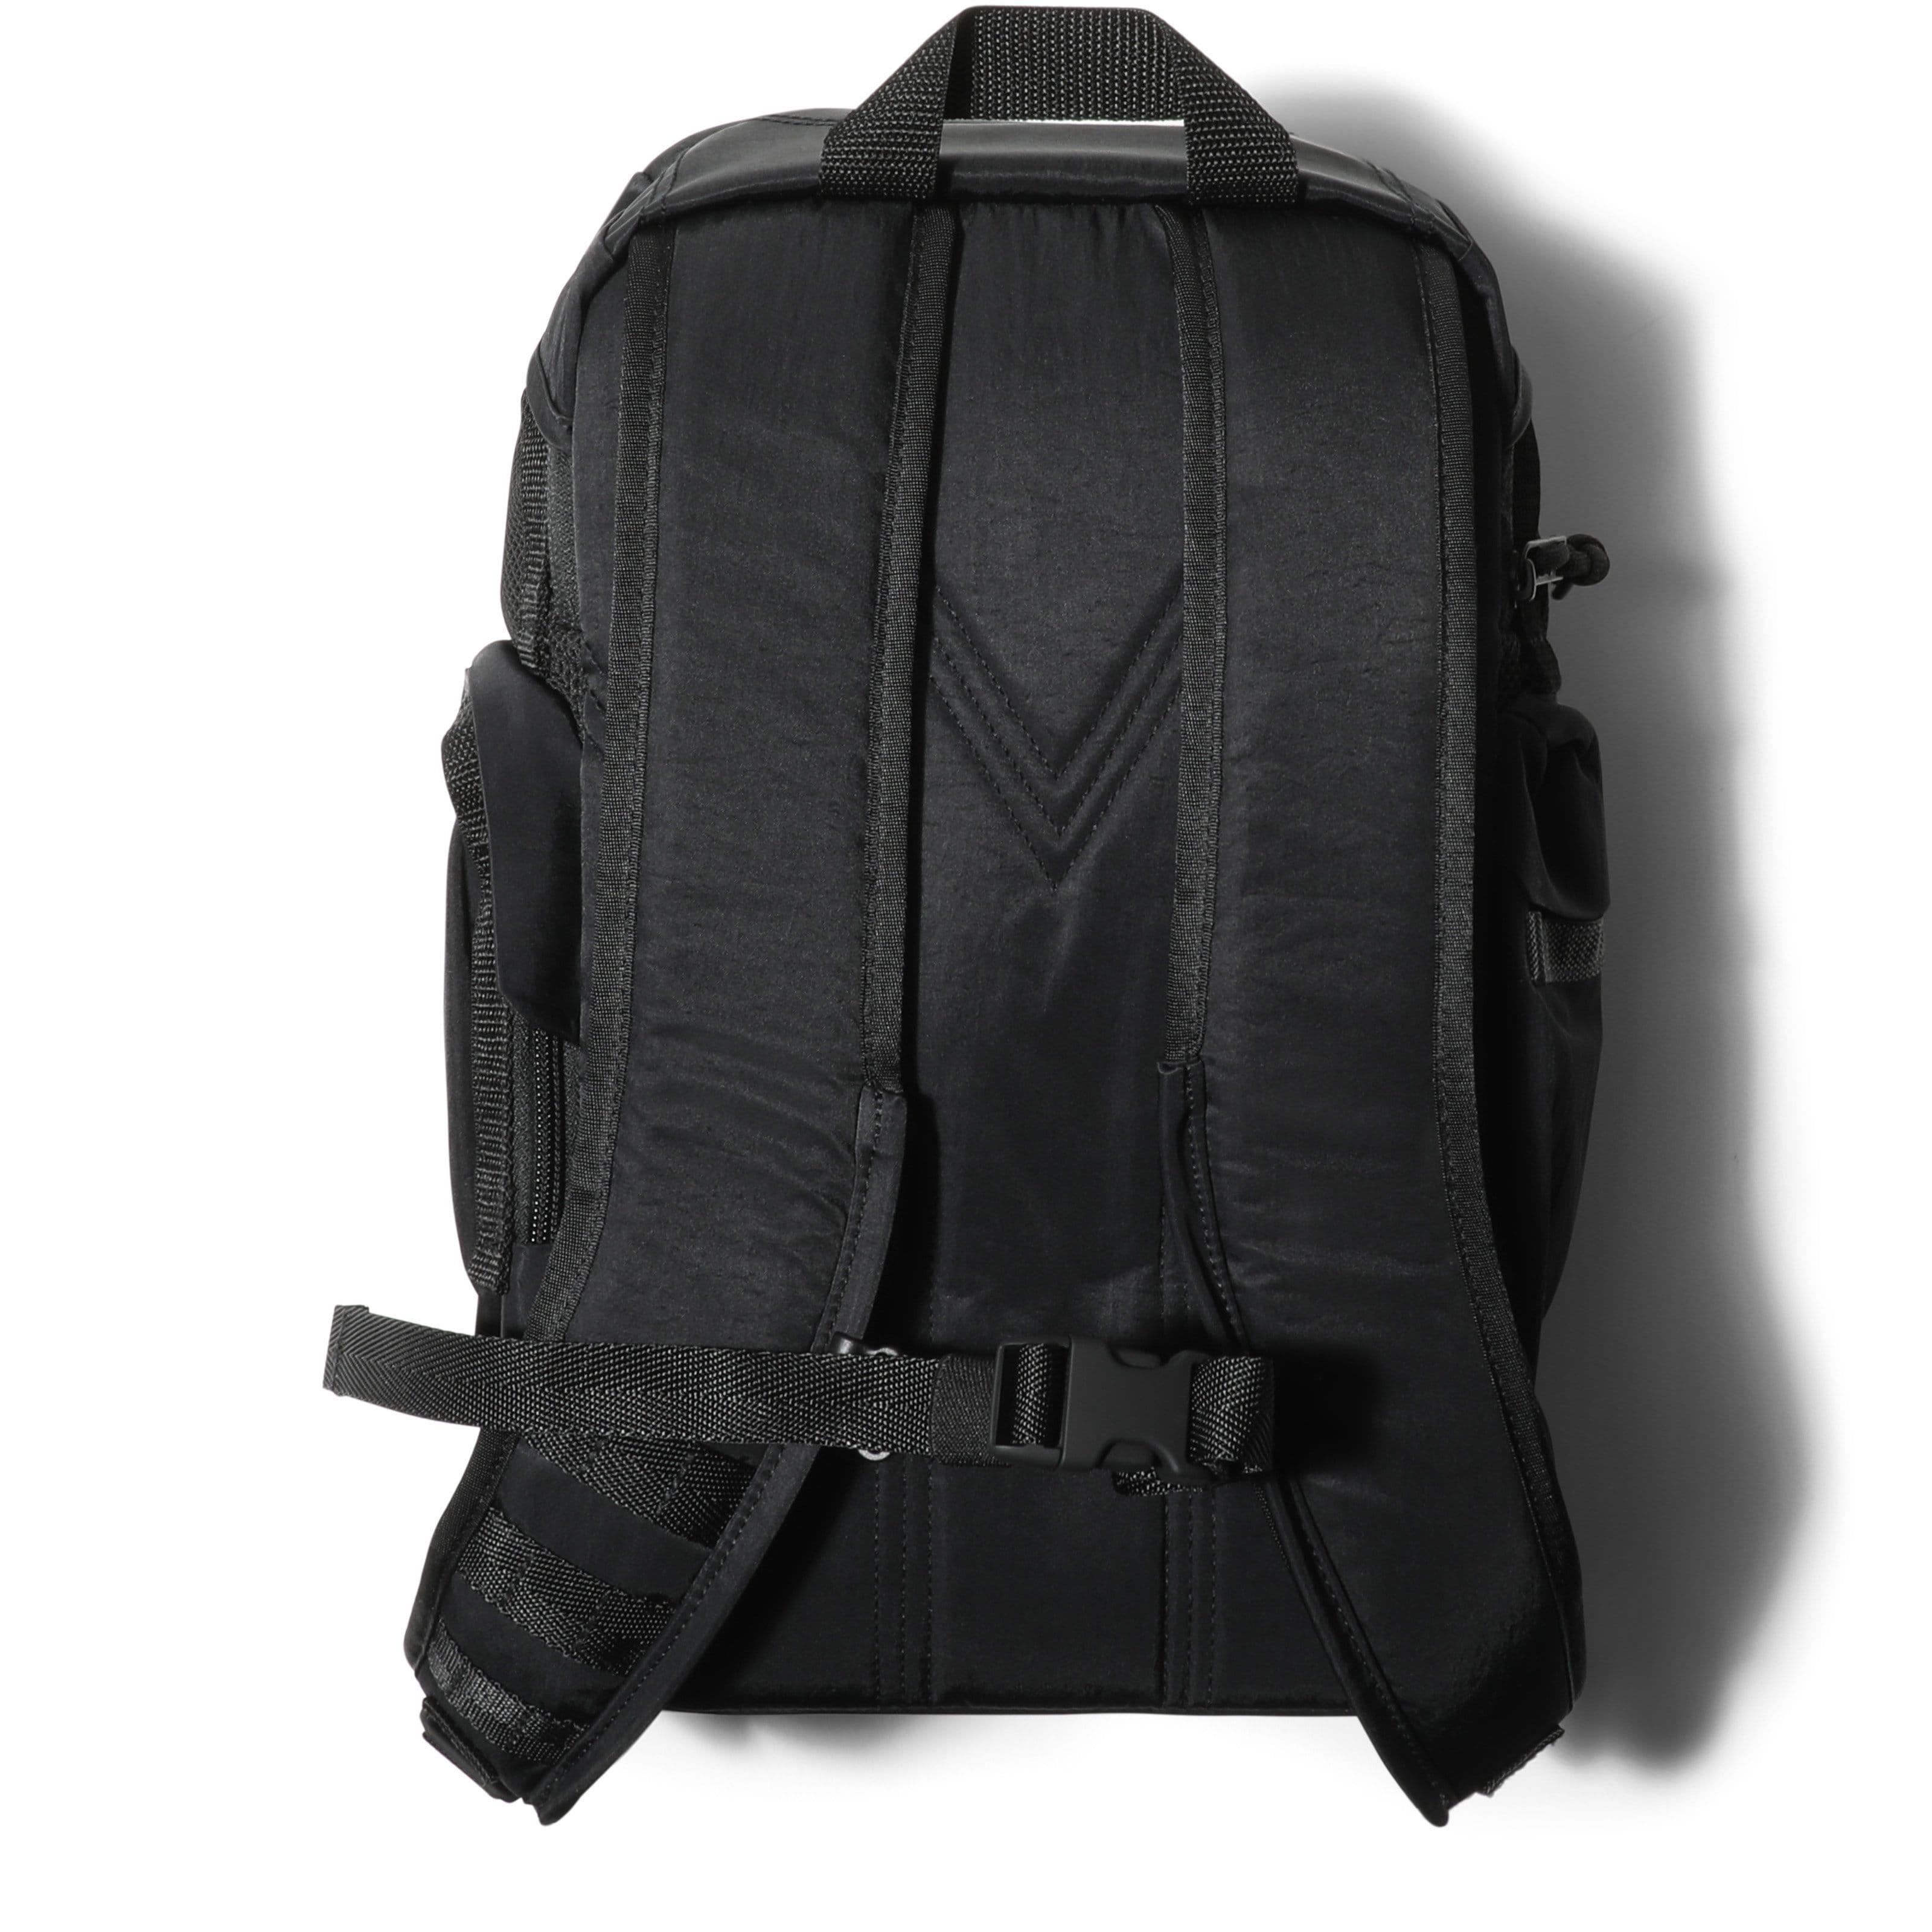 Adidas Y-3 Bags & Accessories BLACK / O/S Y-3 XS MOBILITY